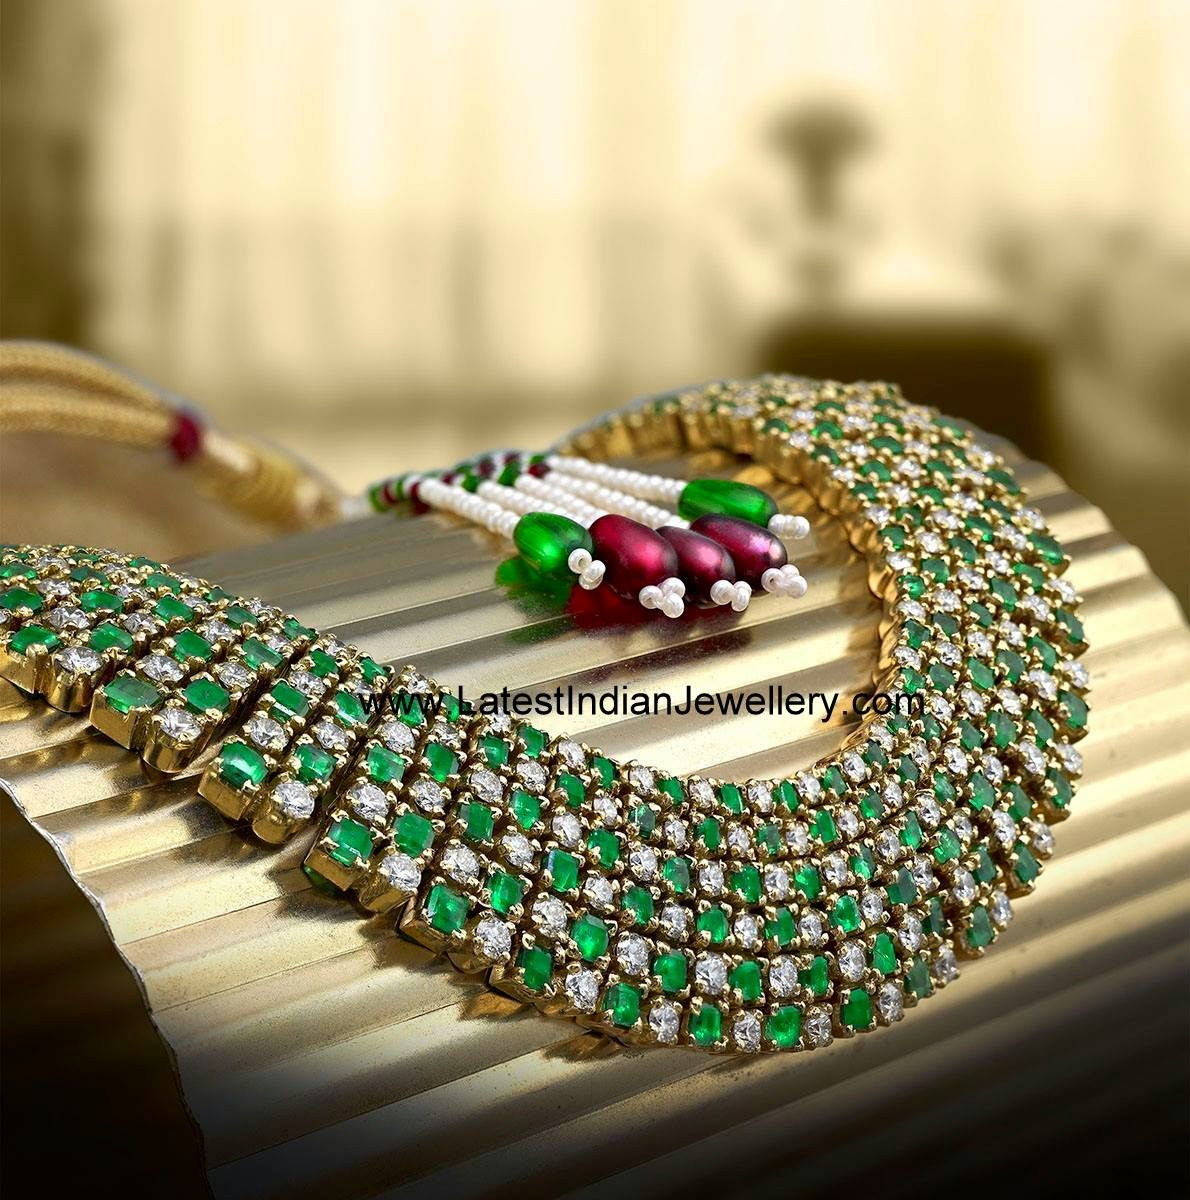 Solitare Diamond Emerald Necklace